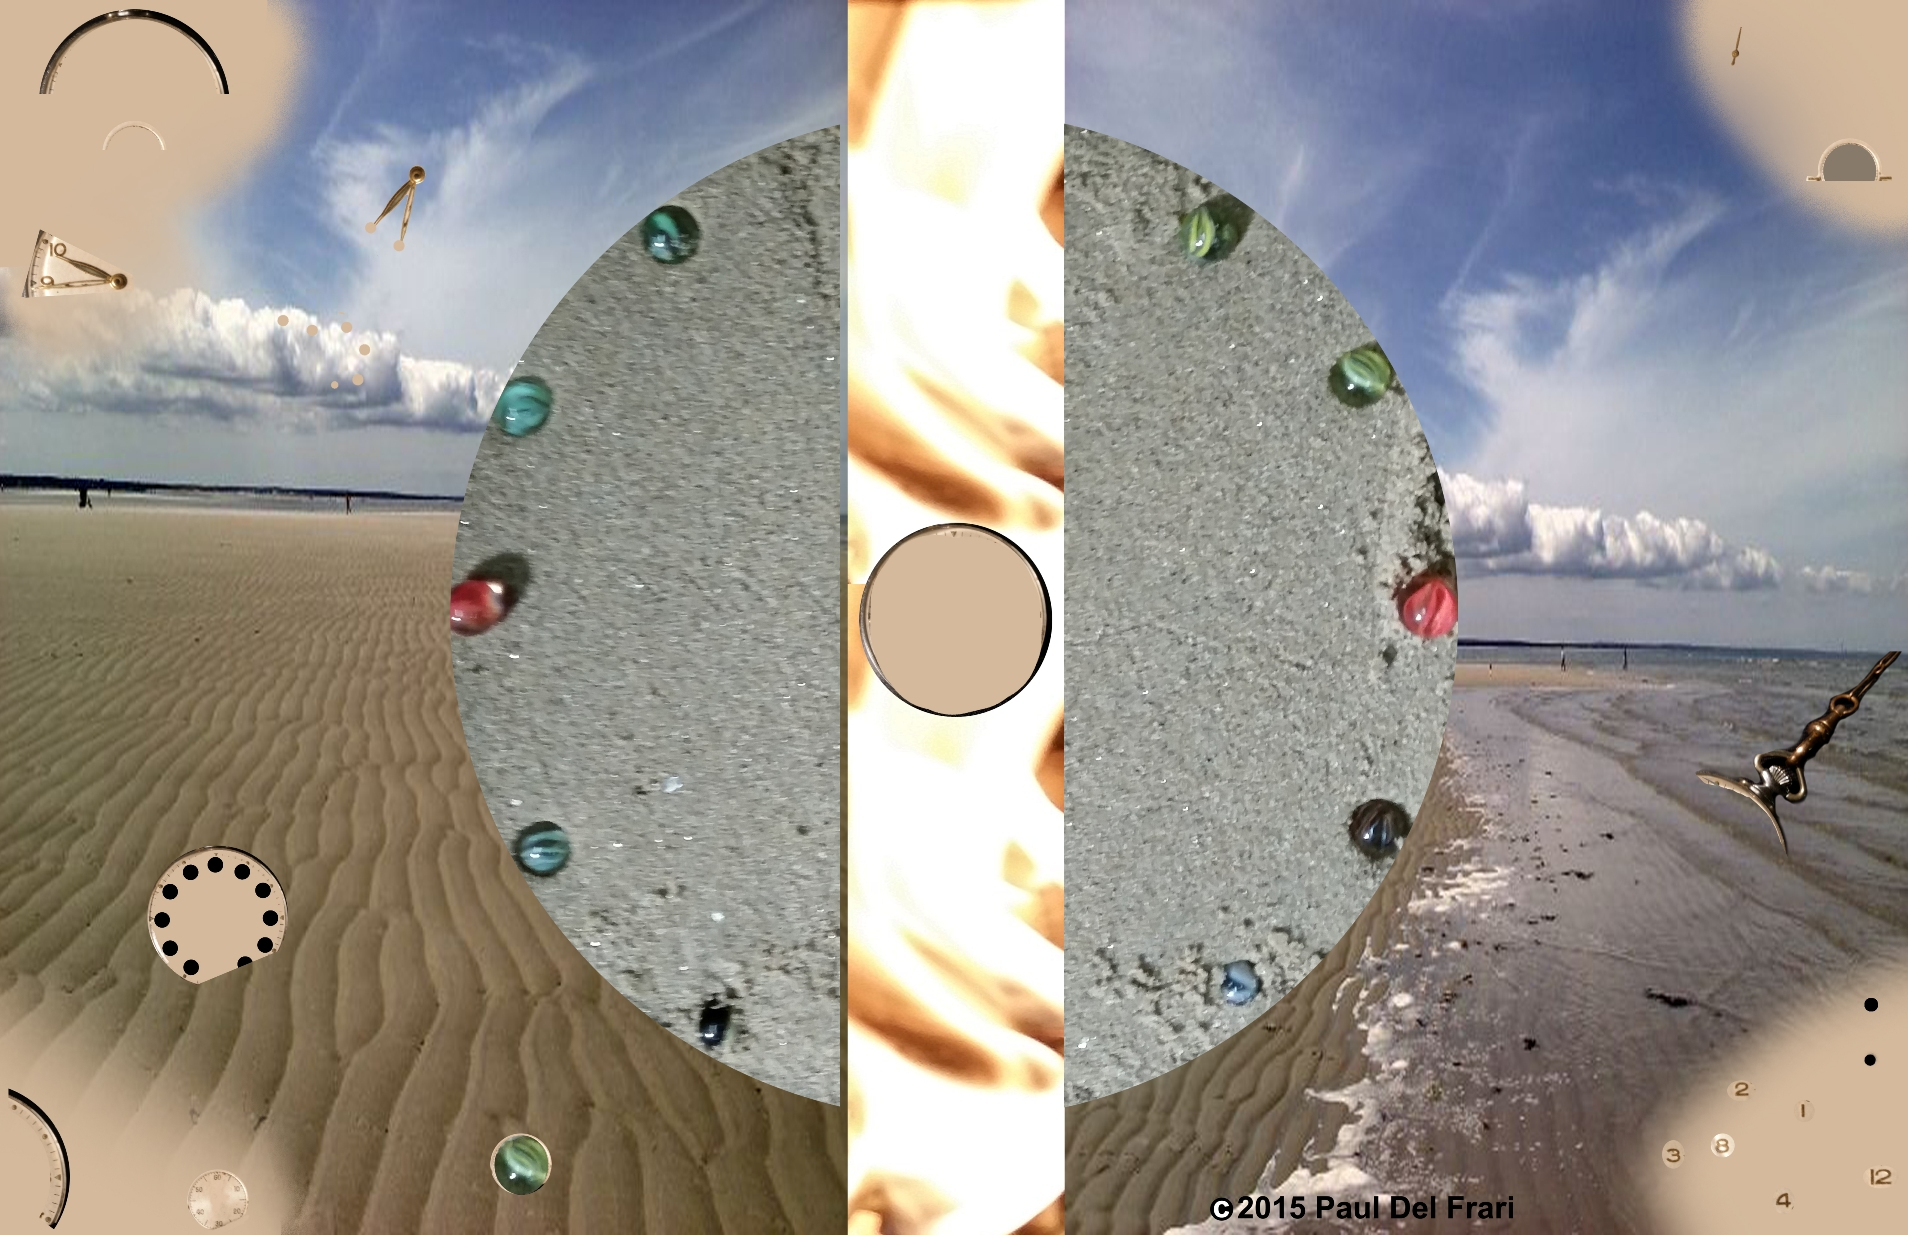 Same sand, water and sky image with the cement circle split by a narrow band which now has a fire background and round circle where watch and pocket were. Pieces of the watch are randomly scattered on top of the sand, water and sky.